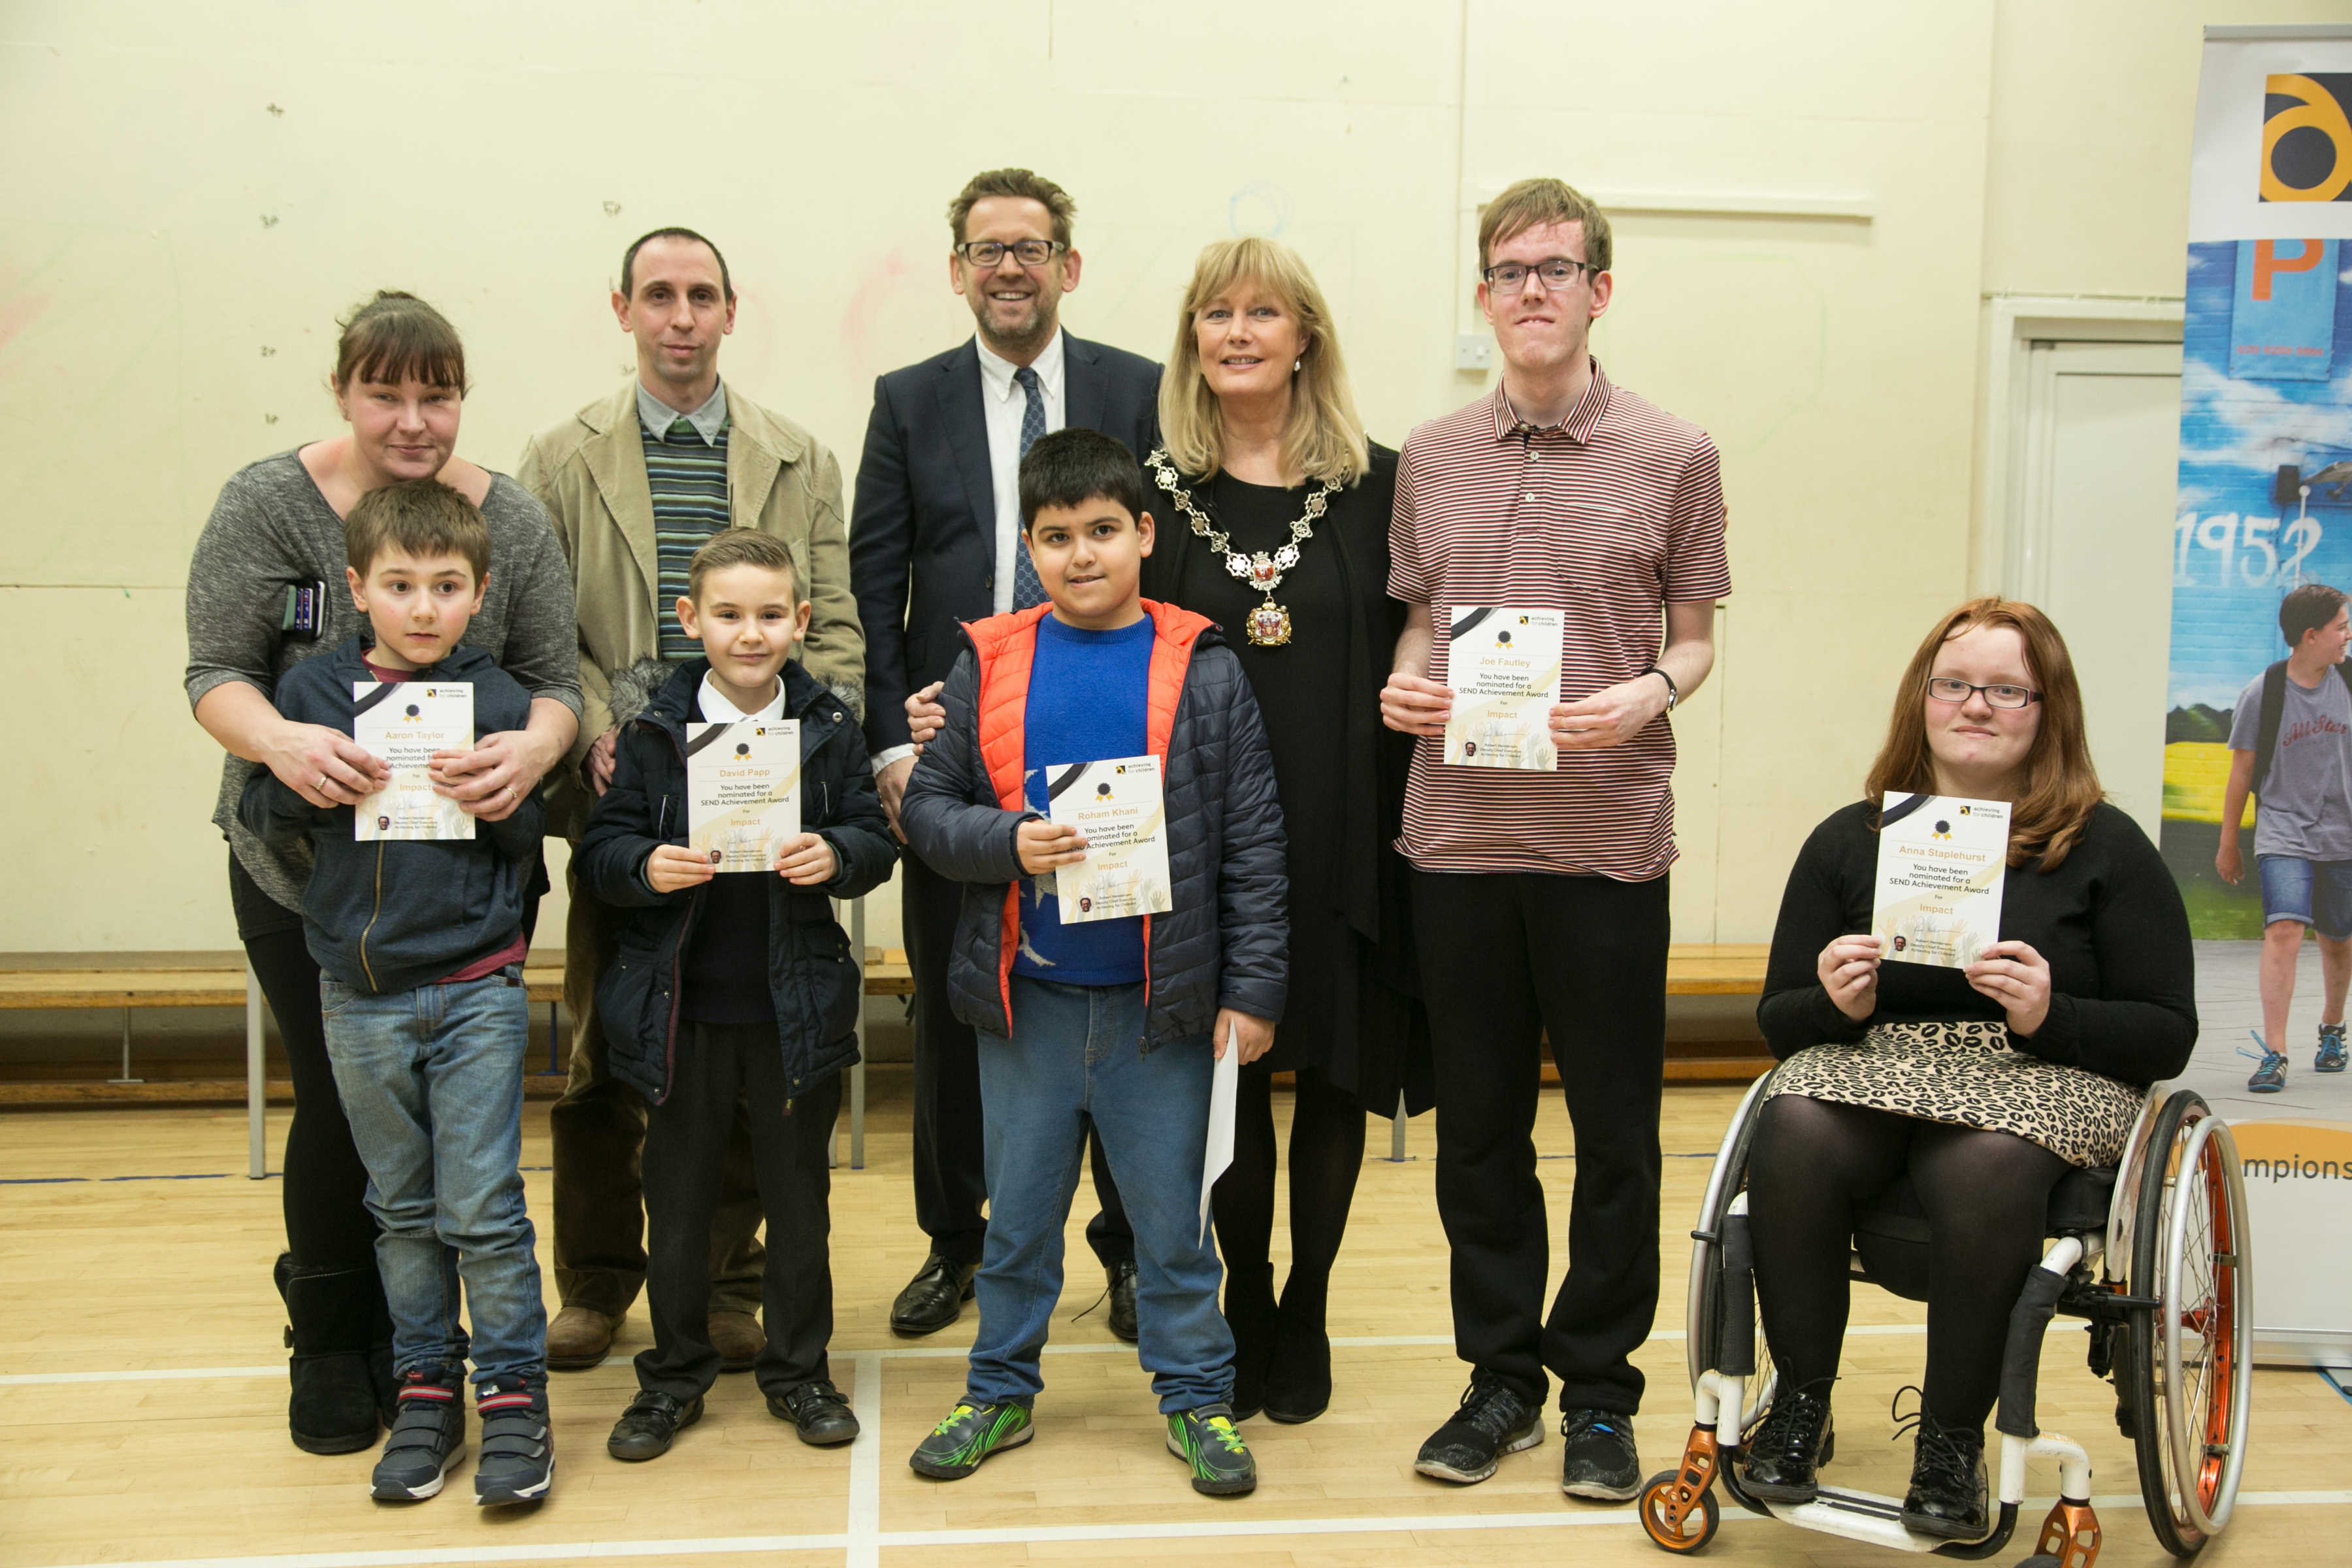 _centre__Rob_Henderson__Director_of_Children_s_Services_at_AfC__stands_with_Deputy_Mayor_of_Richmond__Cllr_Kate_Howard__and_the_nominees_in_the__impact__category_and_family_members.